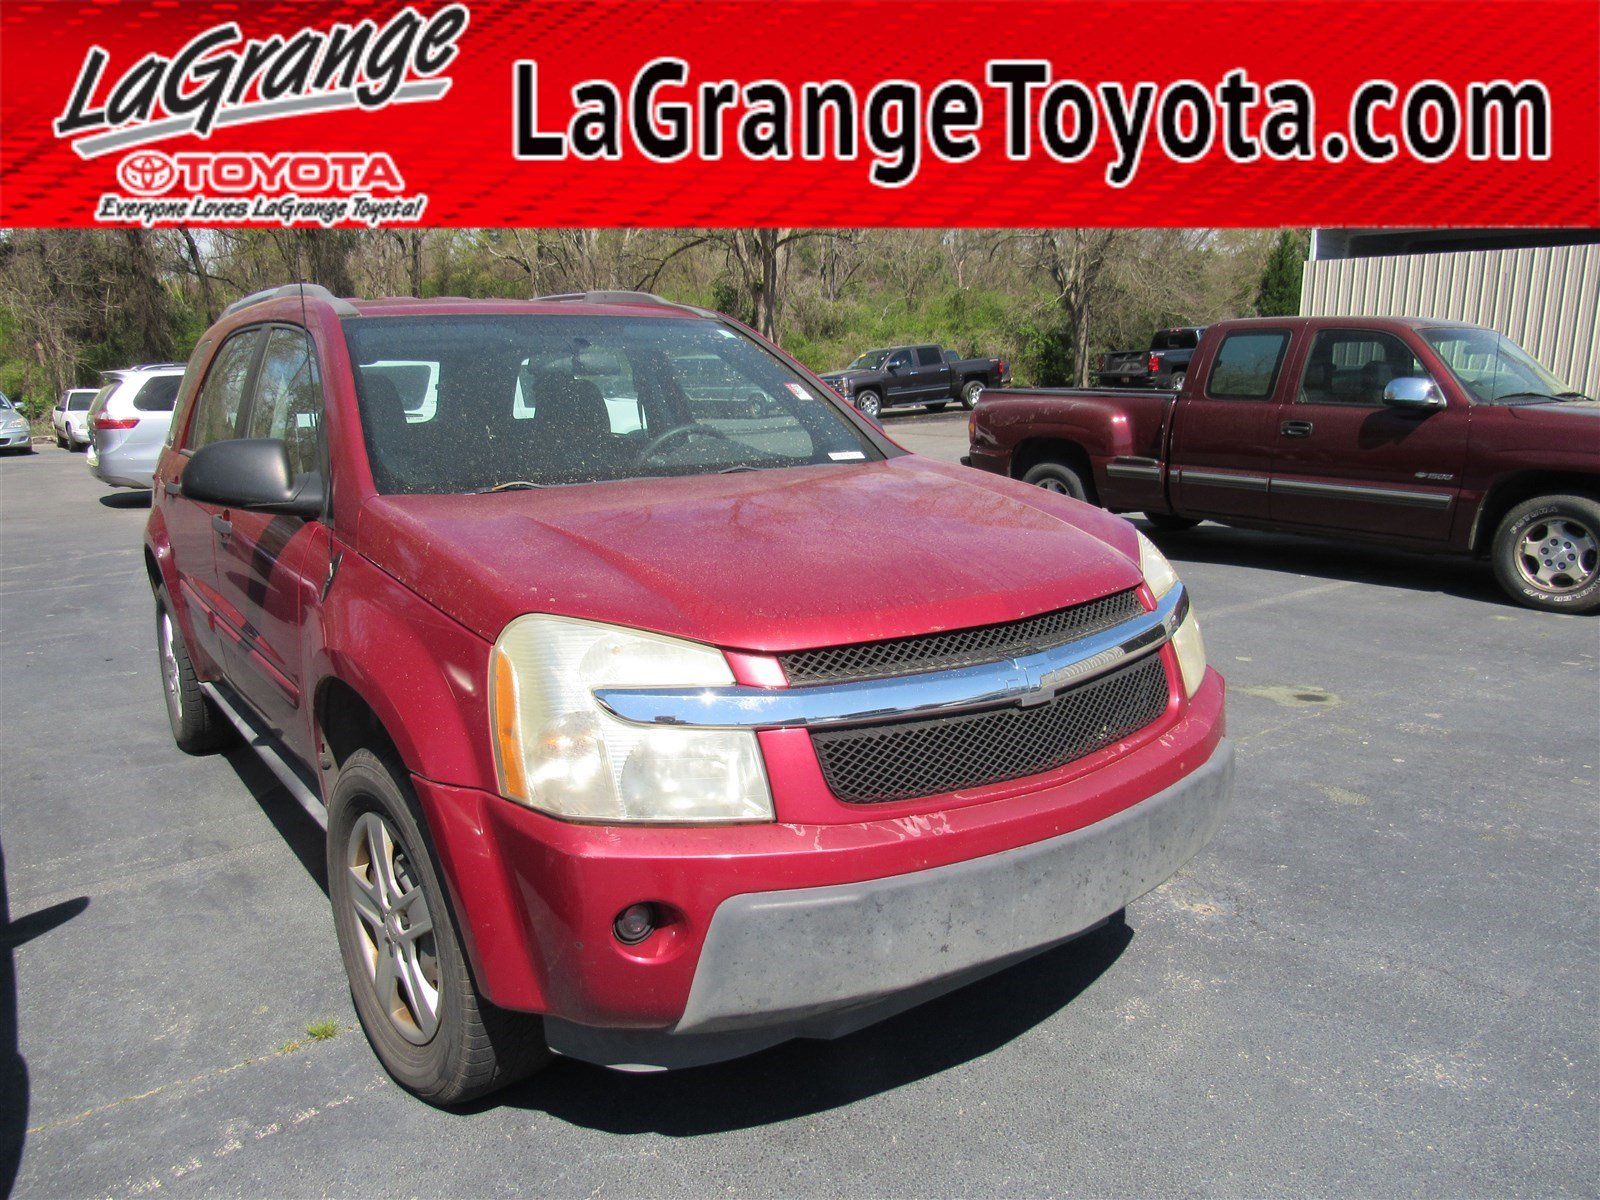 Pre-Owned 2005 Chevrolet Equinox 4dr 2WD LS